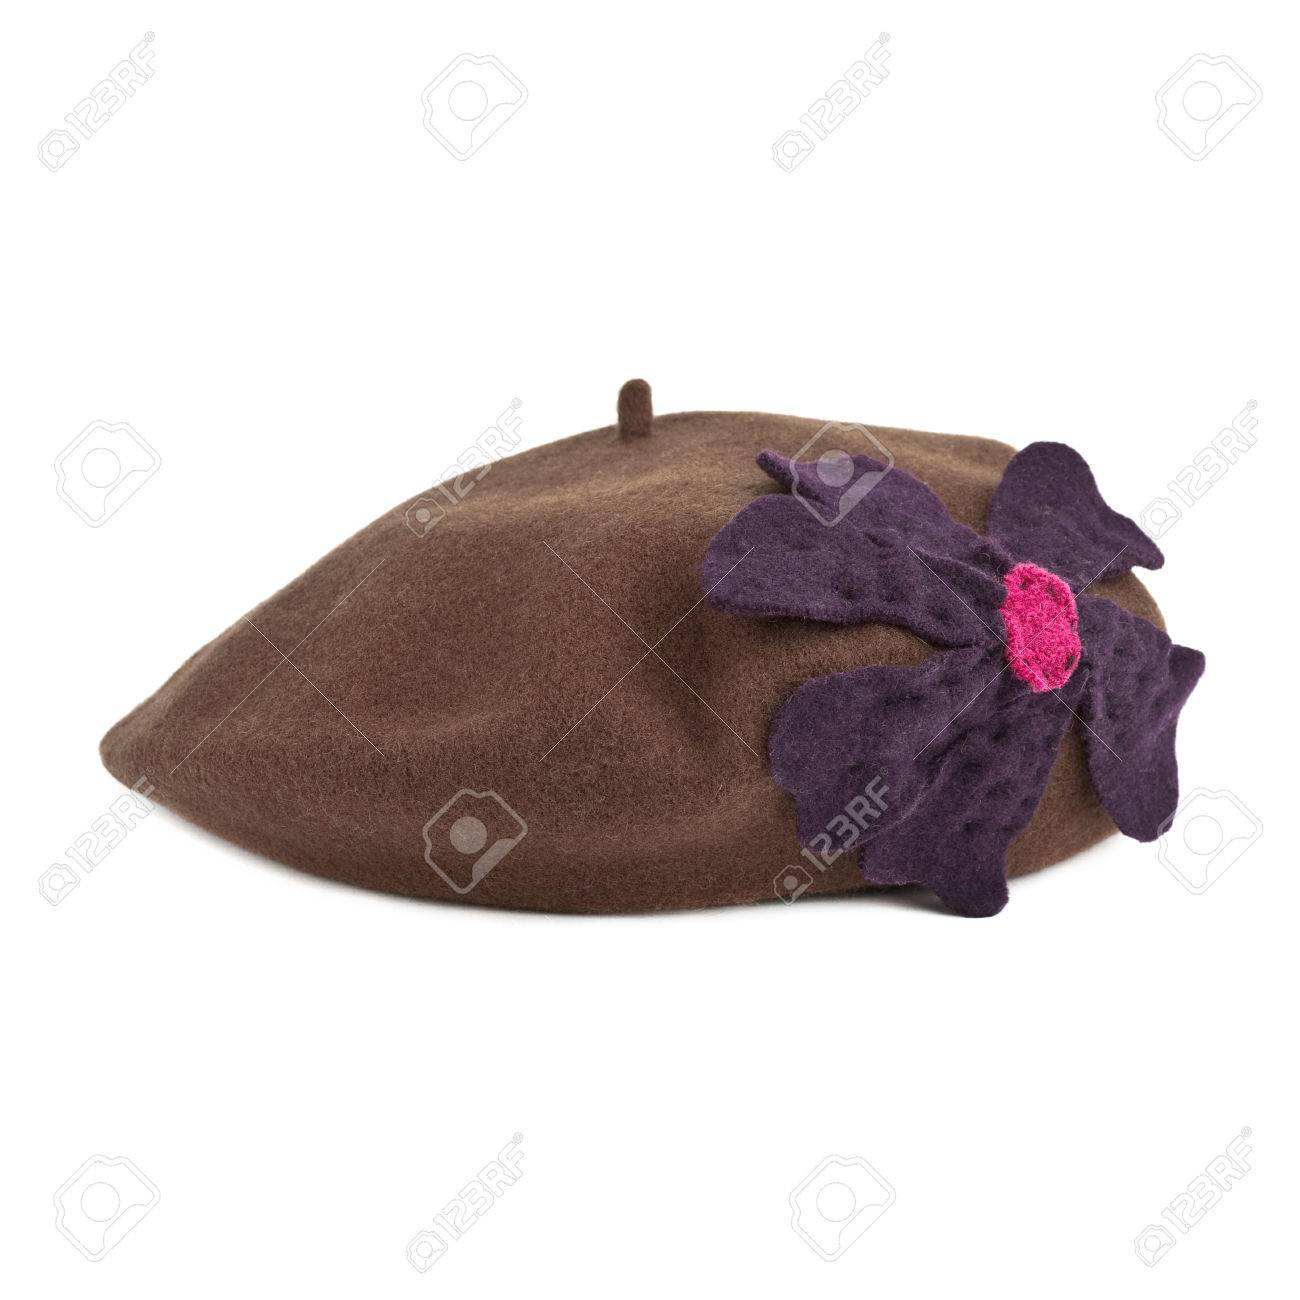 6a75324200f95 pink french beret made from felt with floral motive on white background  Stock Photo - 79416798